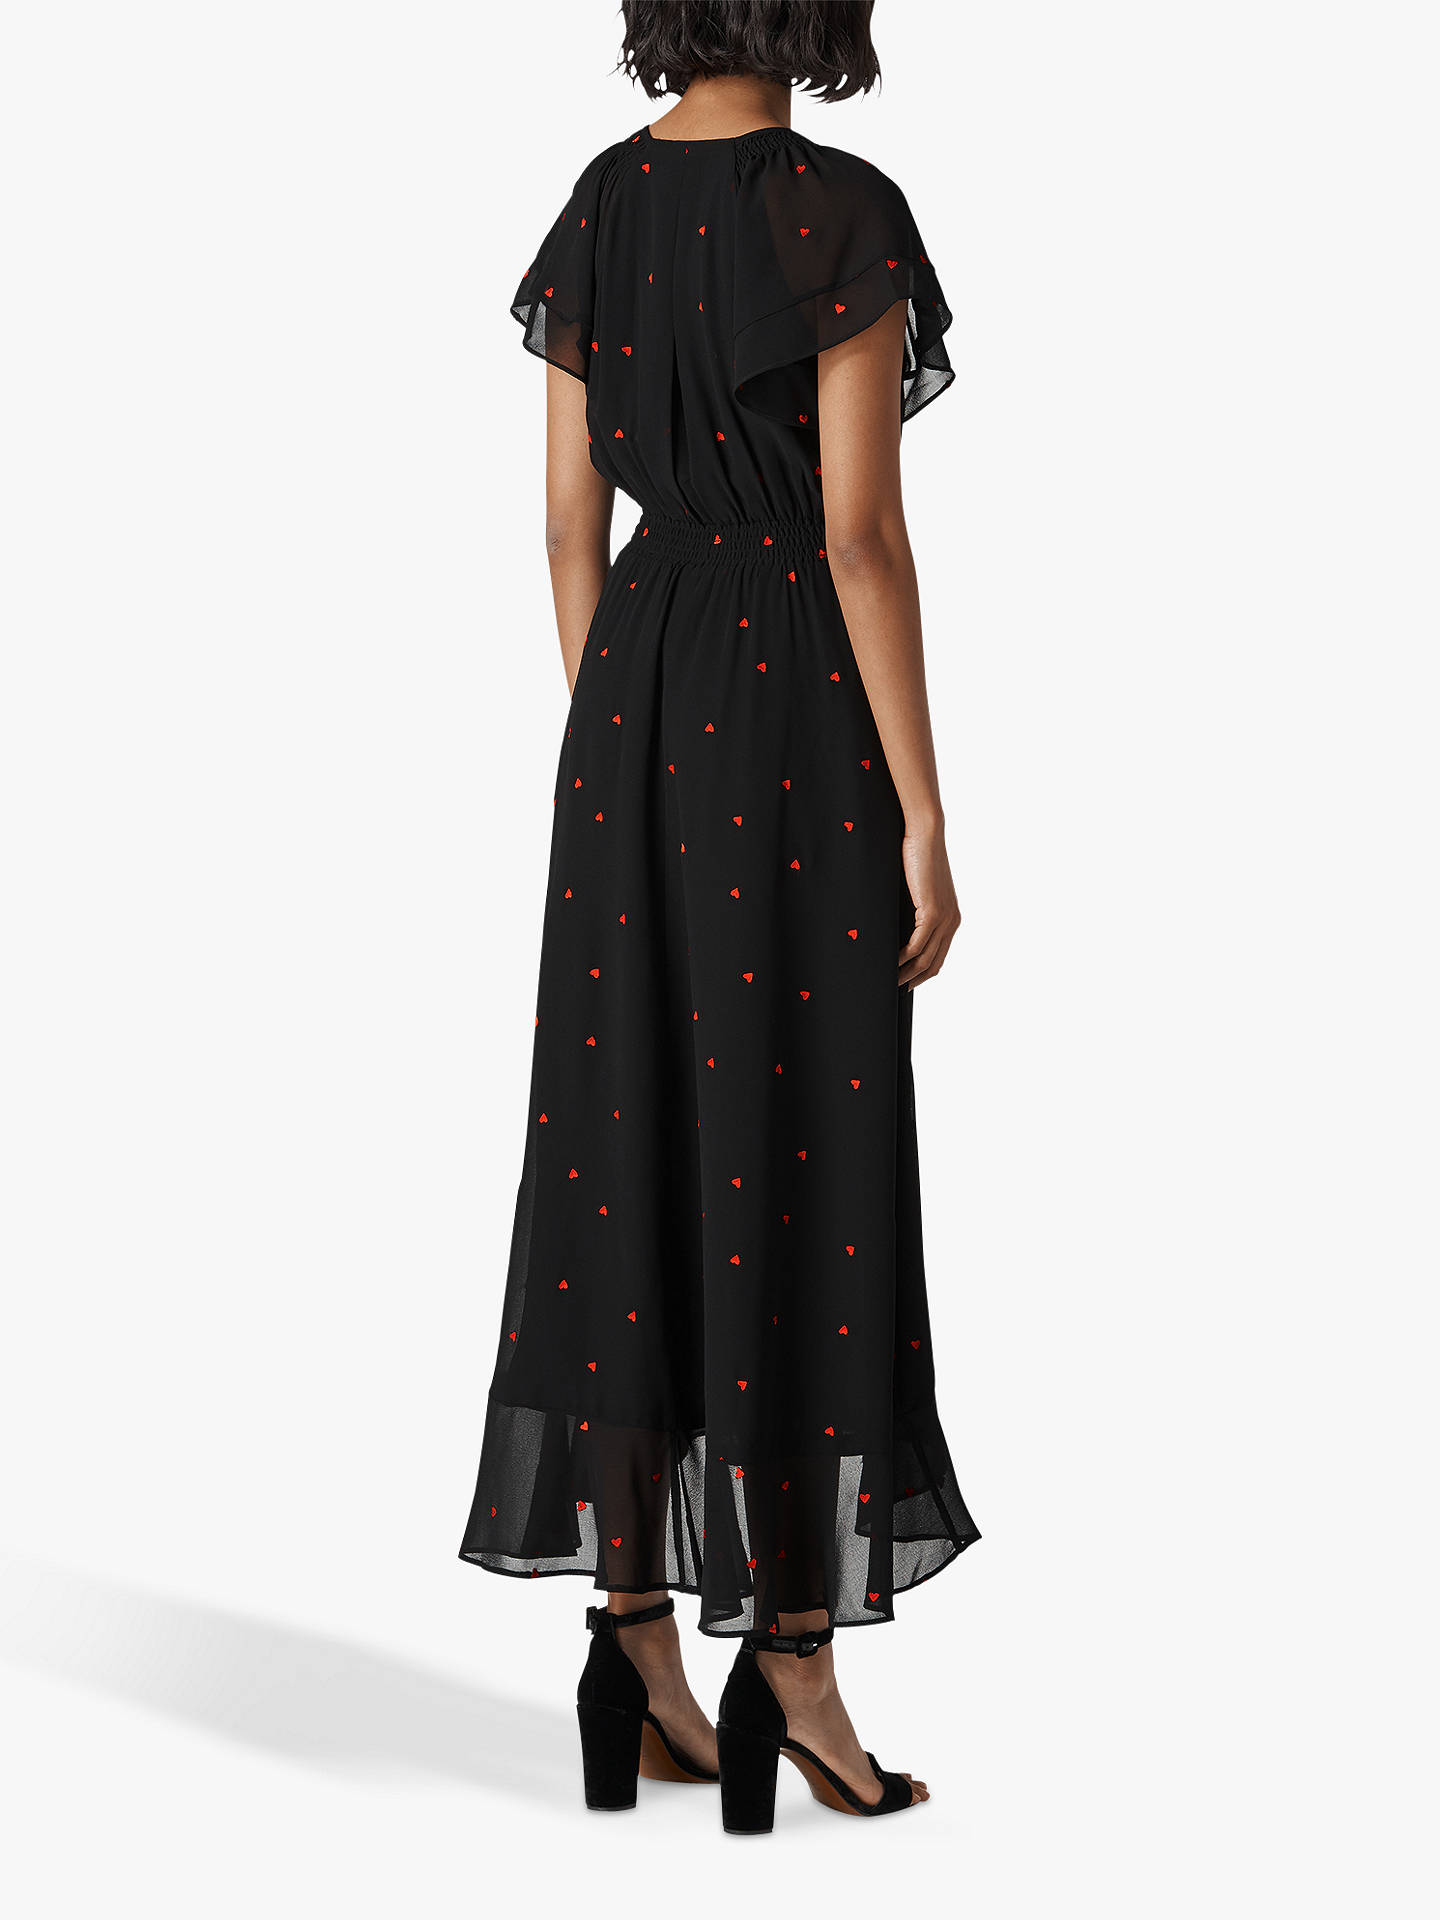 32977fbd ... Buy Whistles Heart Embroidered Maxi Dress, Black, 6 Online at  johnlewis.com ...